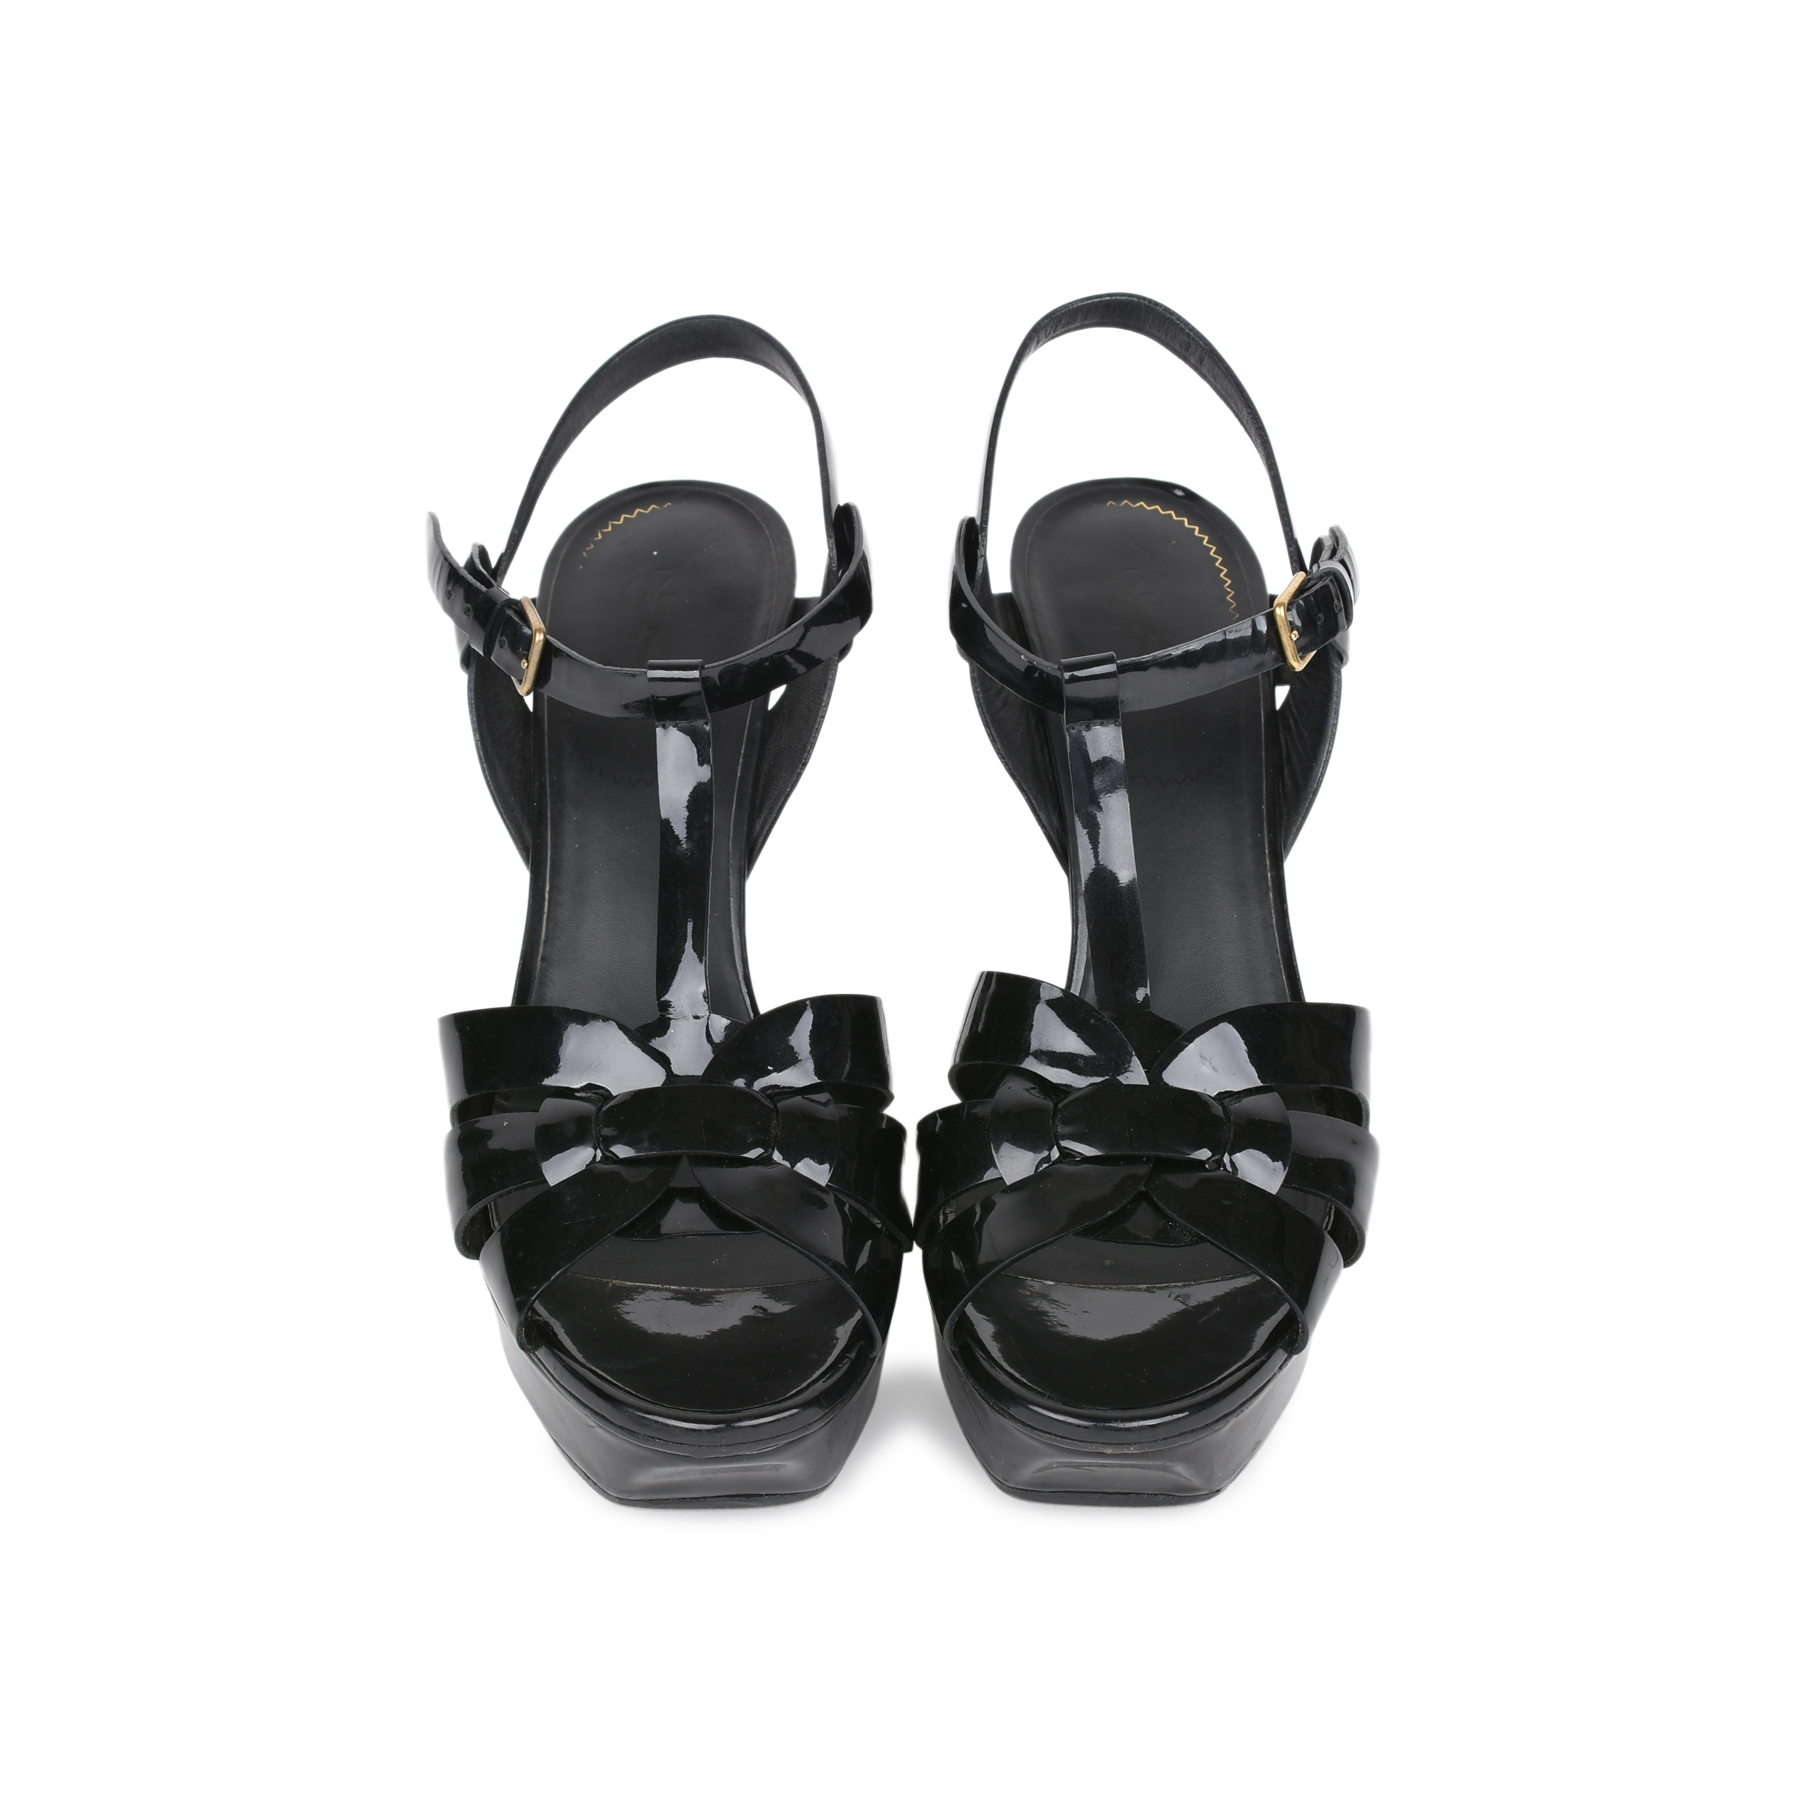 1f78cc6b85 Authentic Second Hand Yves Saint Laurent Patent Tribute Sandals  (PSS-532-00004) - THE FIFTH COLLECTION